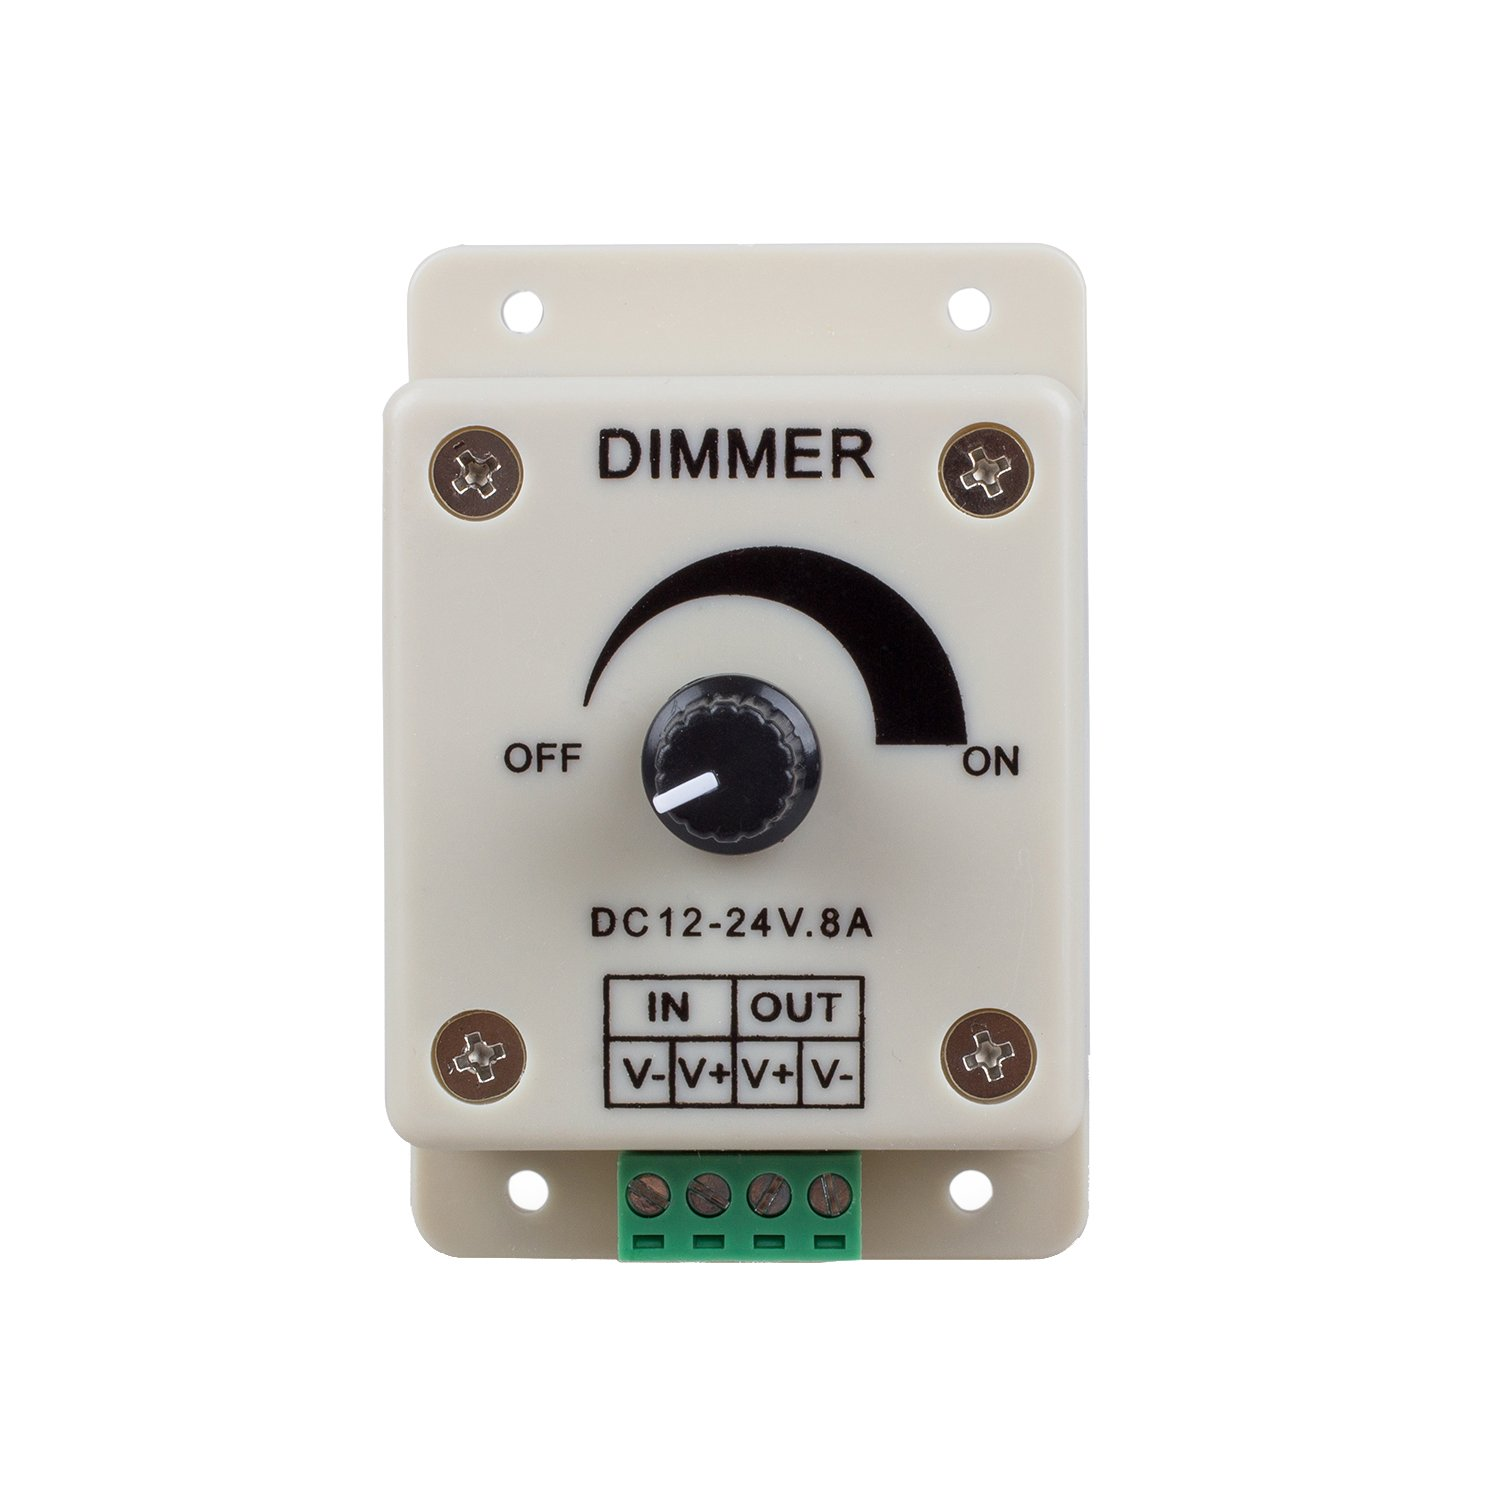 BestLED PWM Dimming Controller for LED Lights, Ribbon, Strip, 12 - 24 Volt (12V - 24V) 8 Amp, Electrical Dimmer Switches for Home, Commercial, Industrial, and Office. Dimmer is compatible with Hilight, LEDwholesaler, fillite, and others' strips